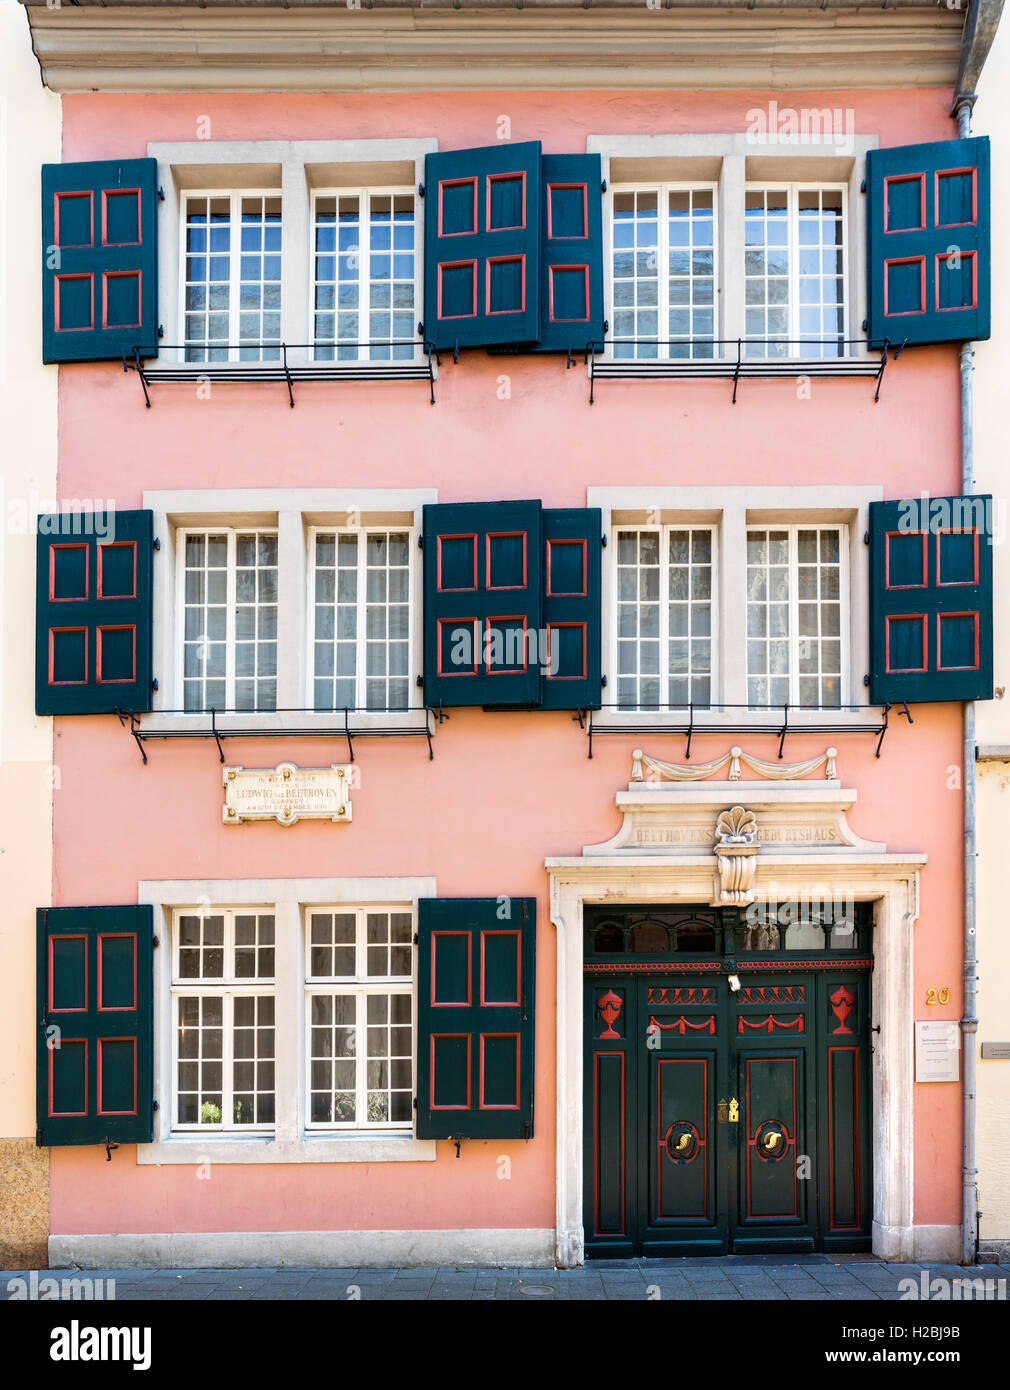 The Beethoven House (Beethoven-Haus), the birthplace of Ludwig van Beethoven on Bonngasse, Bonn, Germany - Stock Image